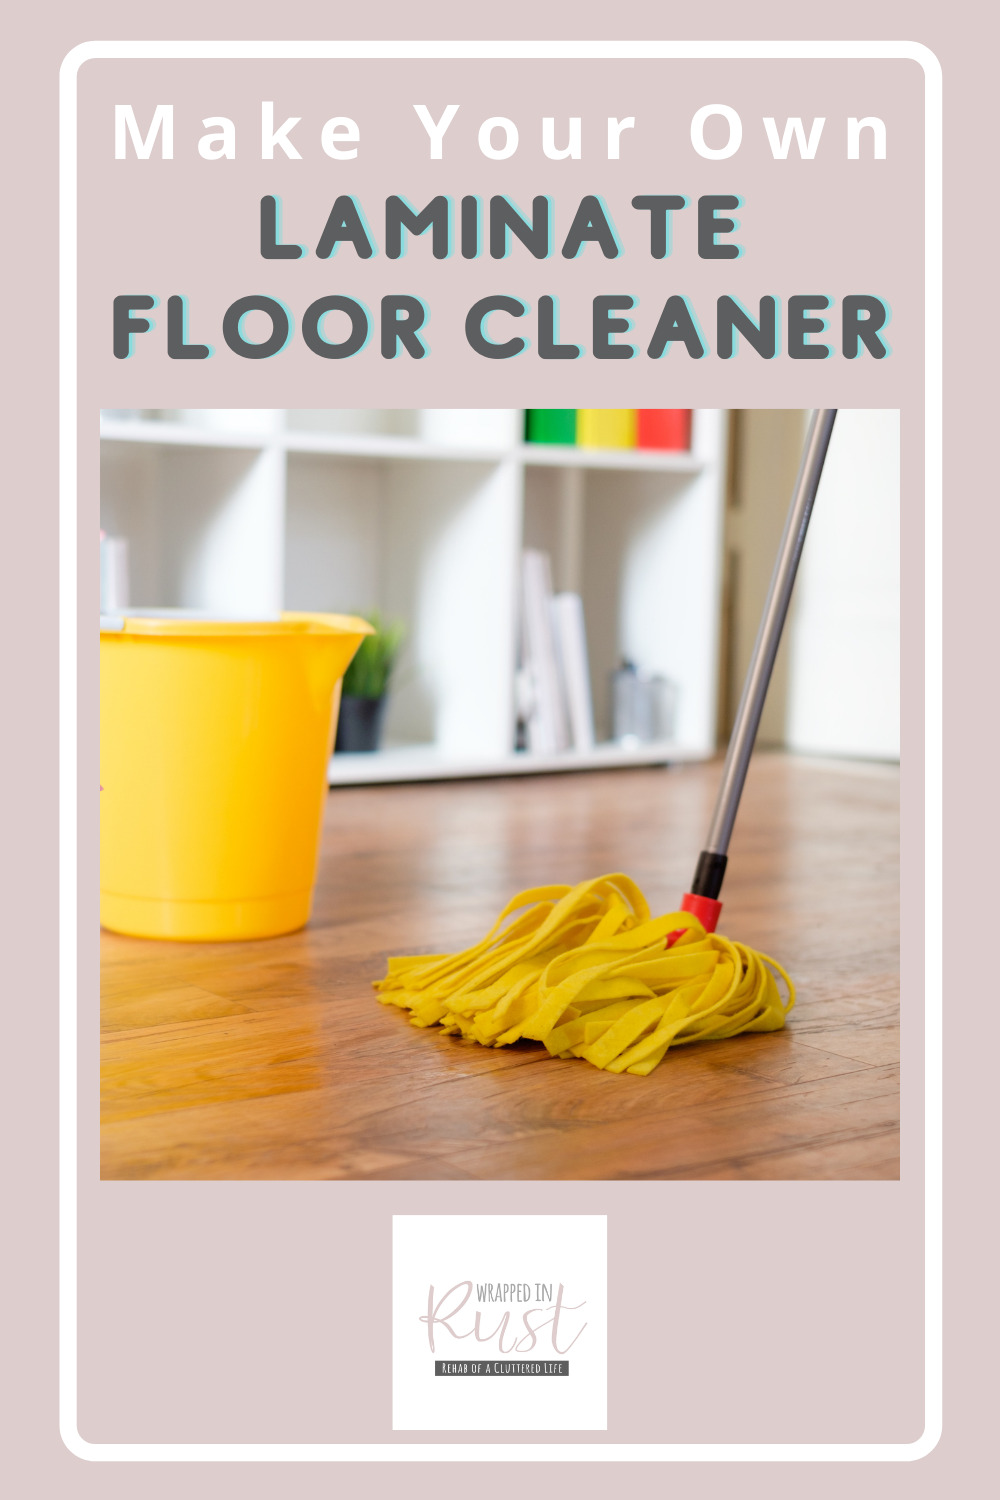 Wrappedinrust.com is filled full of genius cleaning ideas for all of your toughest messes and stains. Get your floors to look immaculate! Try using this homemade laminate floor cleaner for a fresh finish!